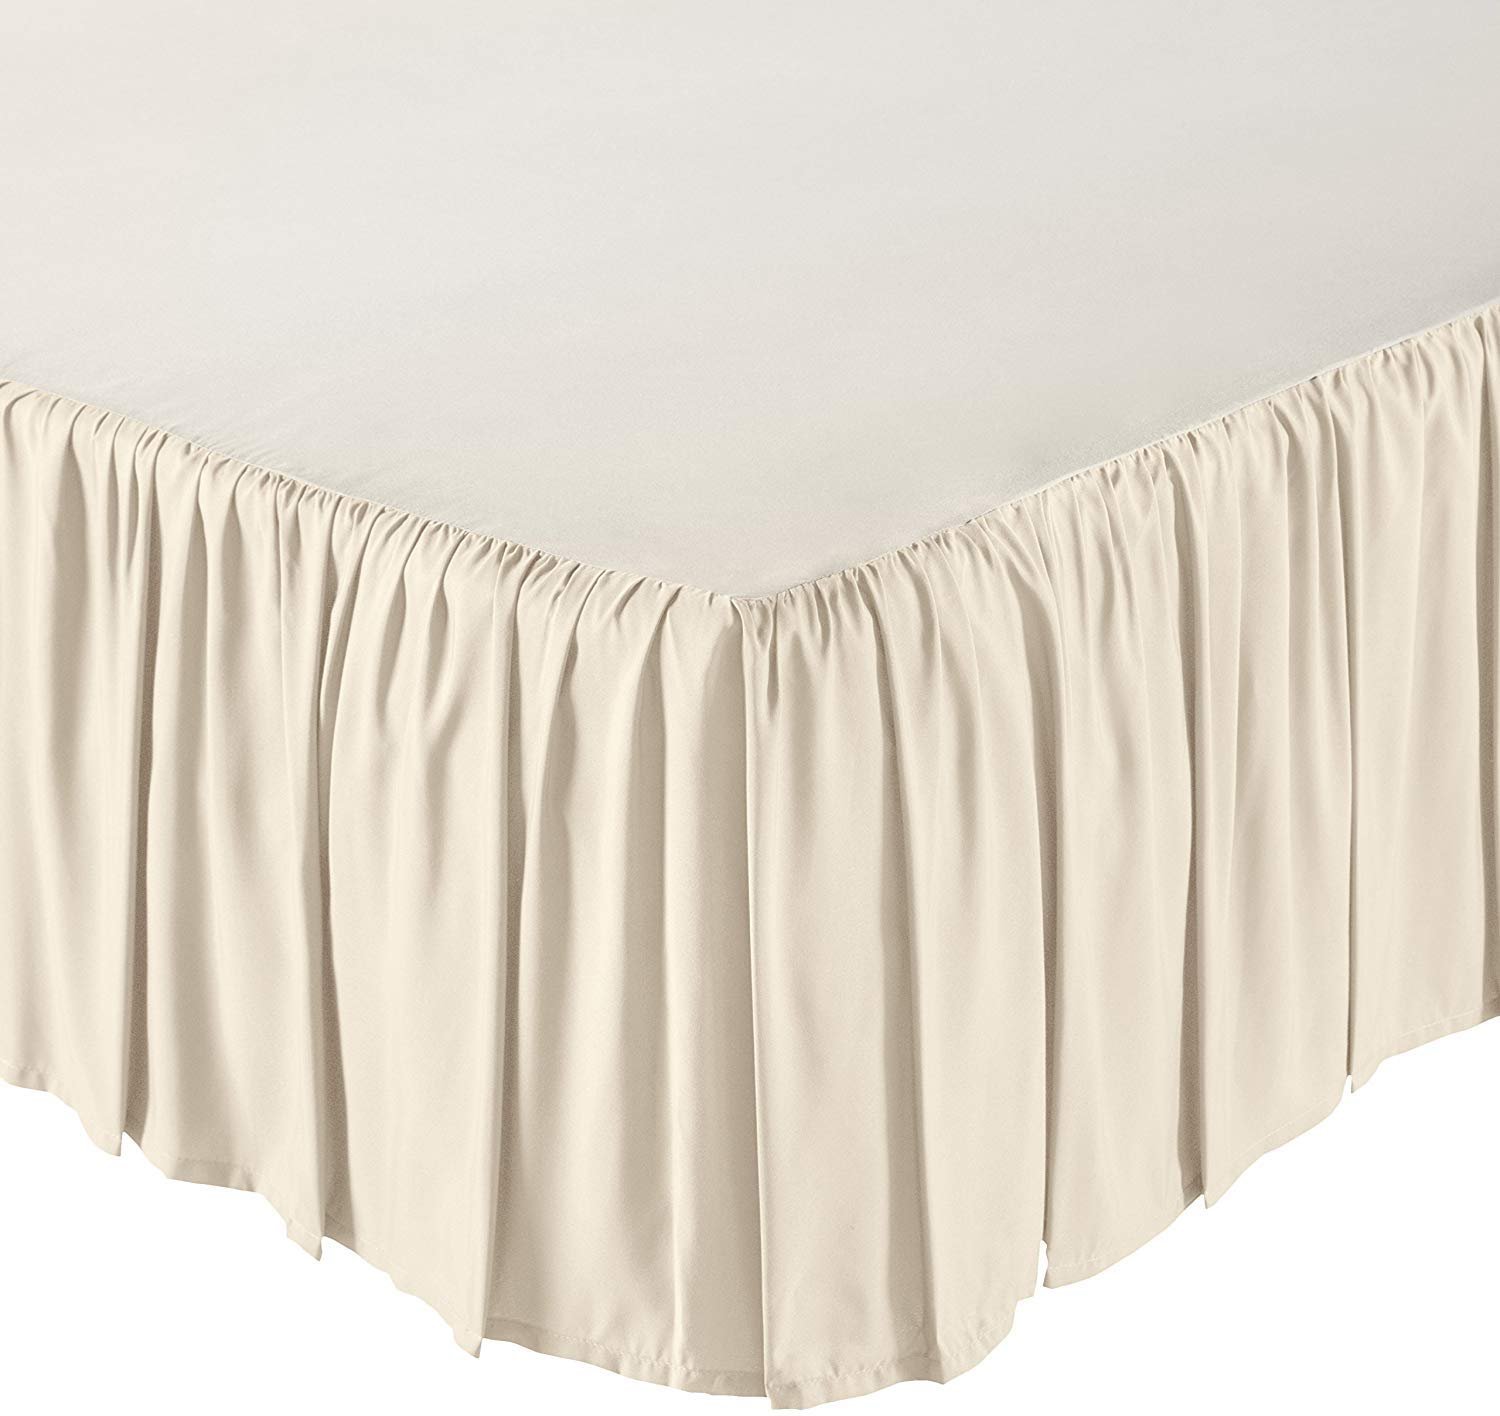 Mattress-Homes Ruffled Bed Skirt- 14 Inch Drop (Queen, Ivory) with Platform (Available in All Bed Sizes and Colors) by Mattress-Homes